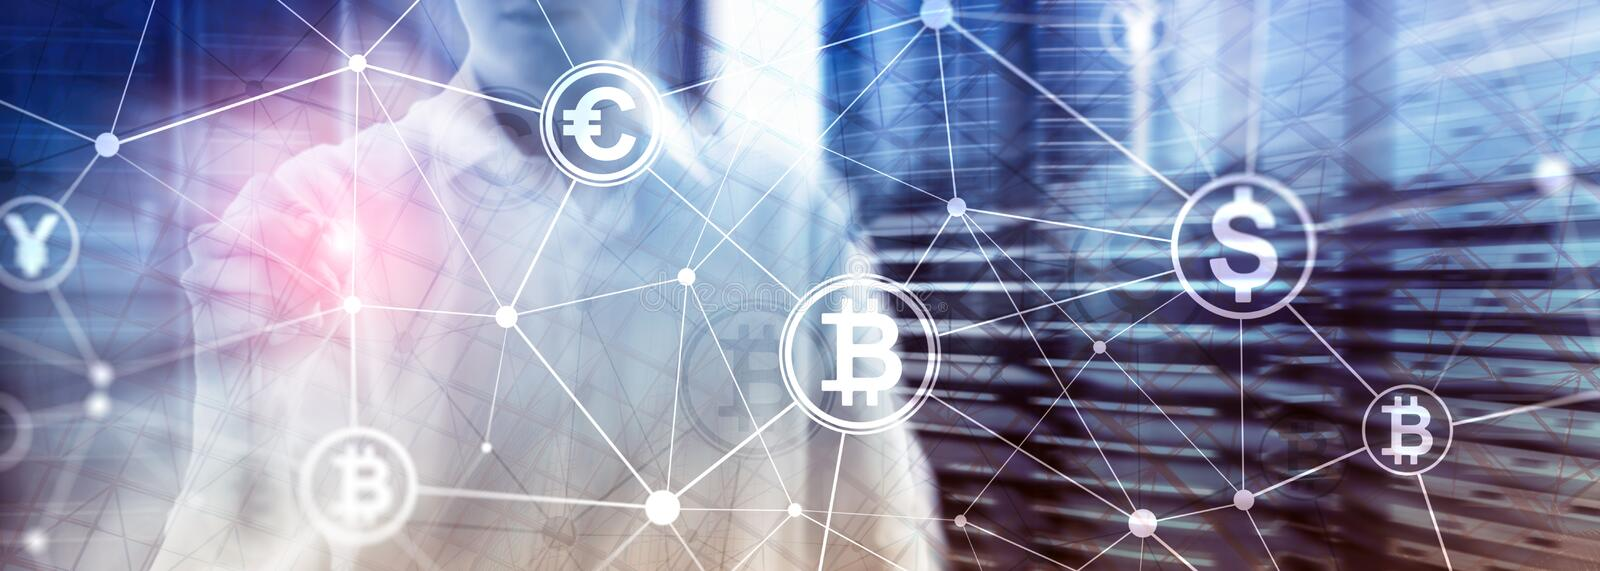 Double exposure Bitcoin and blockchain concept. Digital economy and currency trading. stock photo